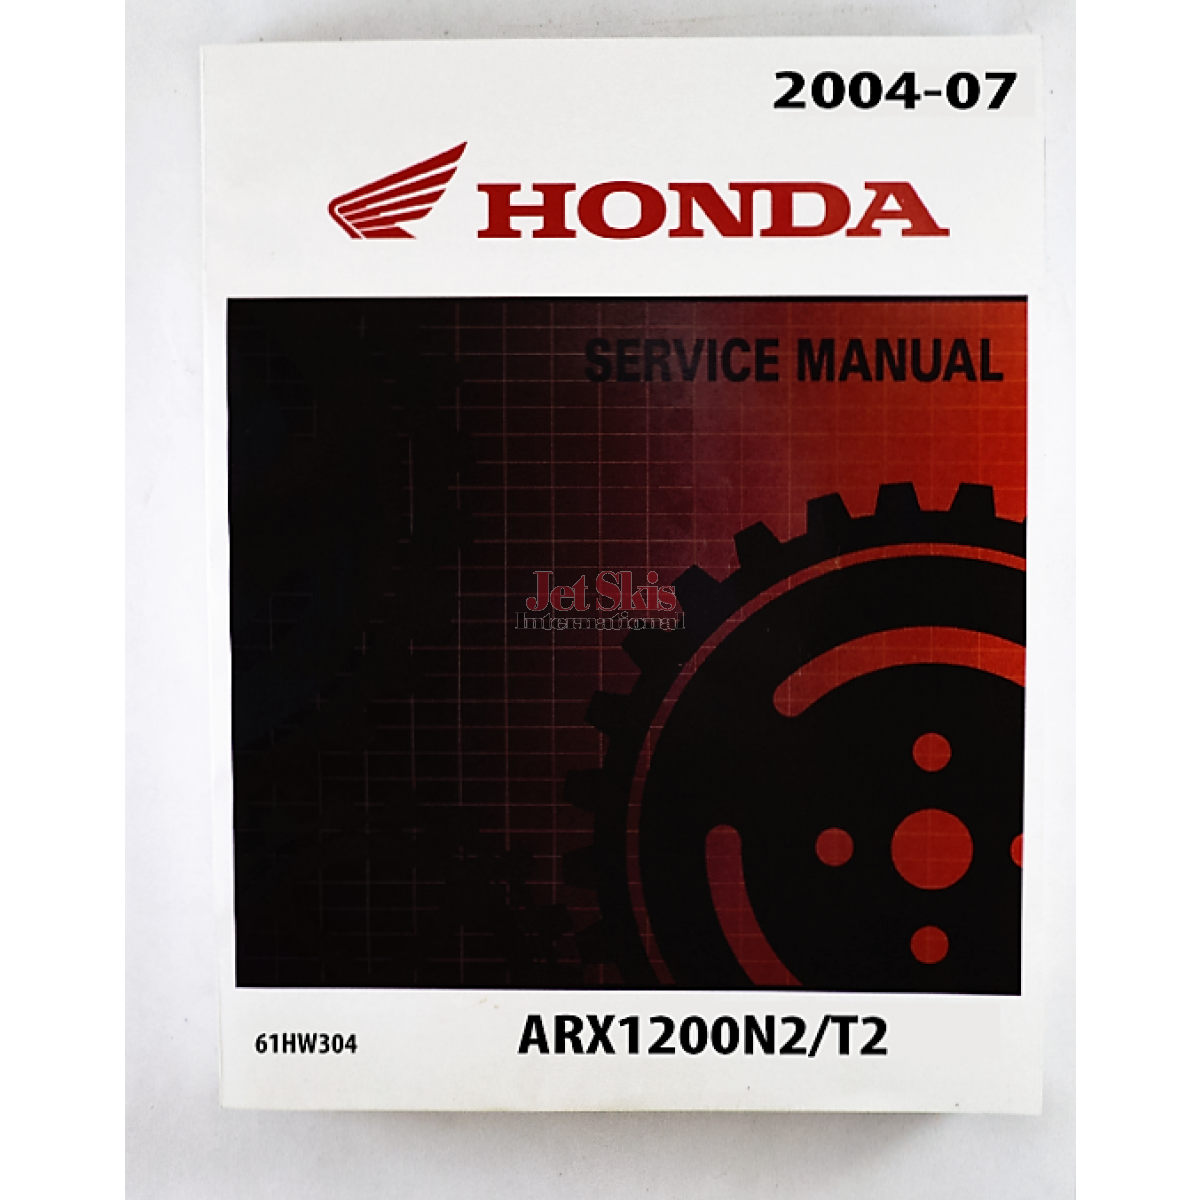 honda aquatrax r12 r12x service and shop manual 61hw304 jet skis rh jetskisint com Honda Motorcycle Service Manual PDF Honda GX340 Service Manual